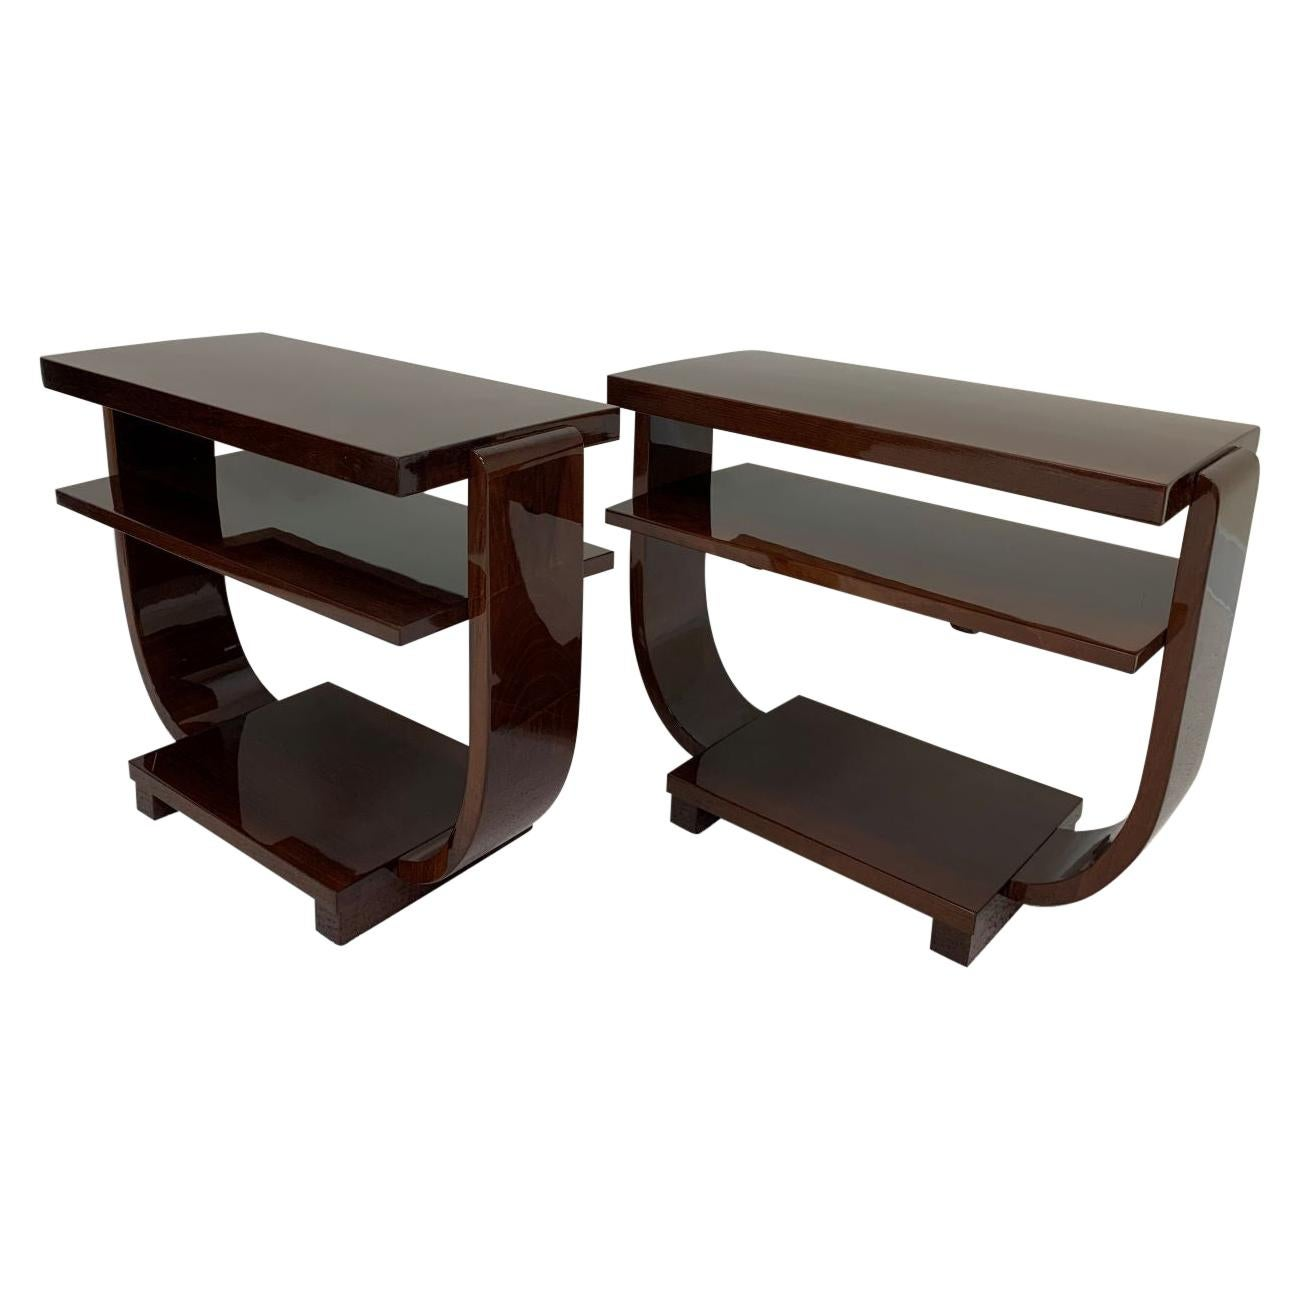 Art Deco Machine Age End Tables by Modernage Furniture Company Circa 1930's